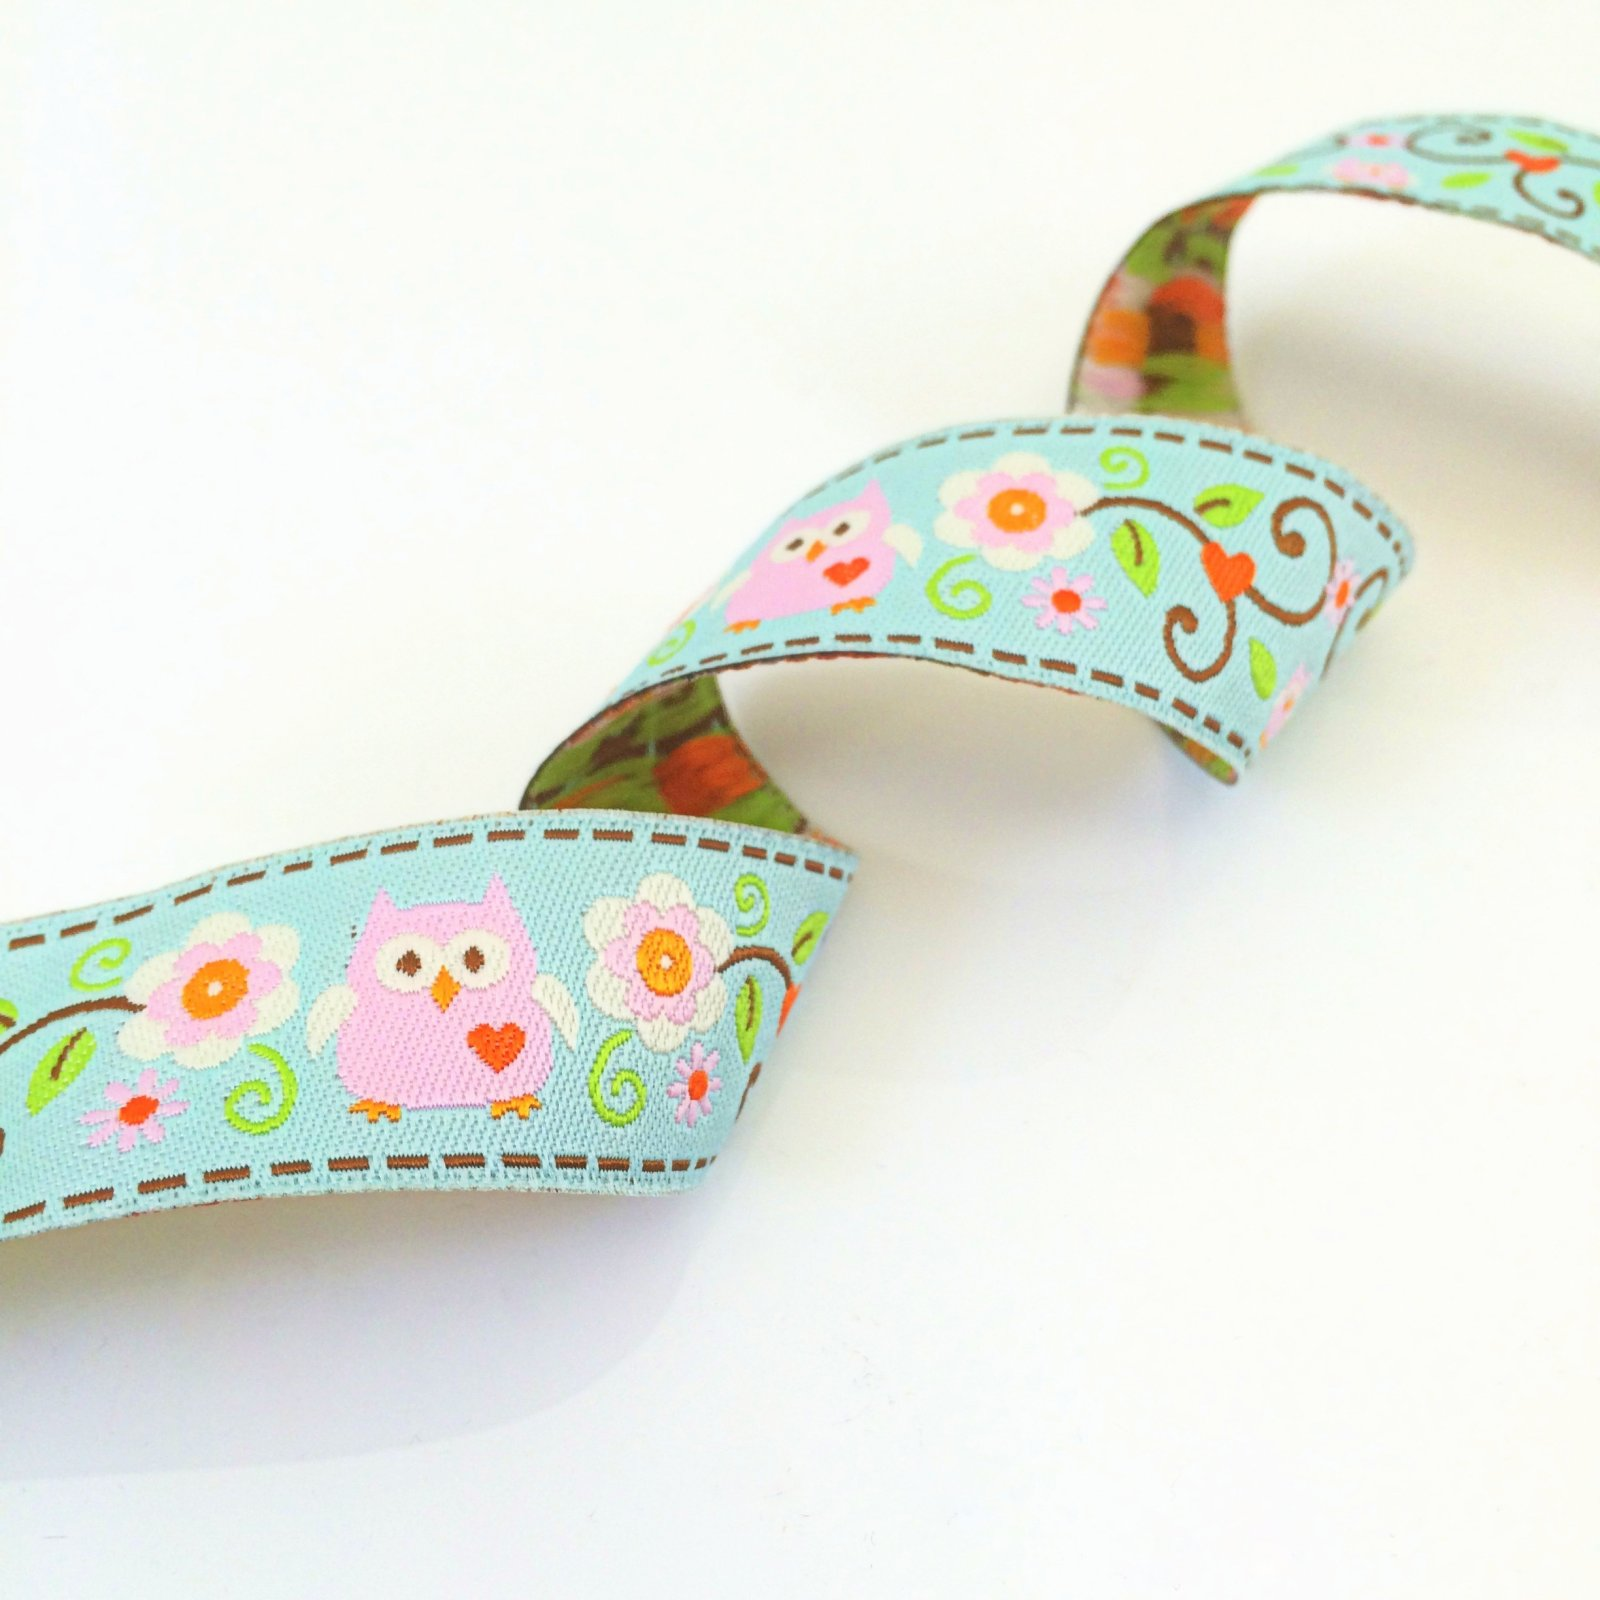 RENAISSANCE RIBBONS - HAPPI OWLS 22MM - PINK ON AQUA